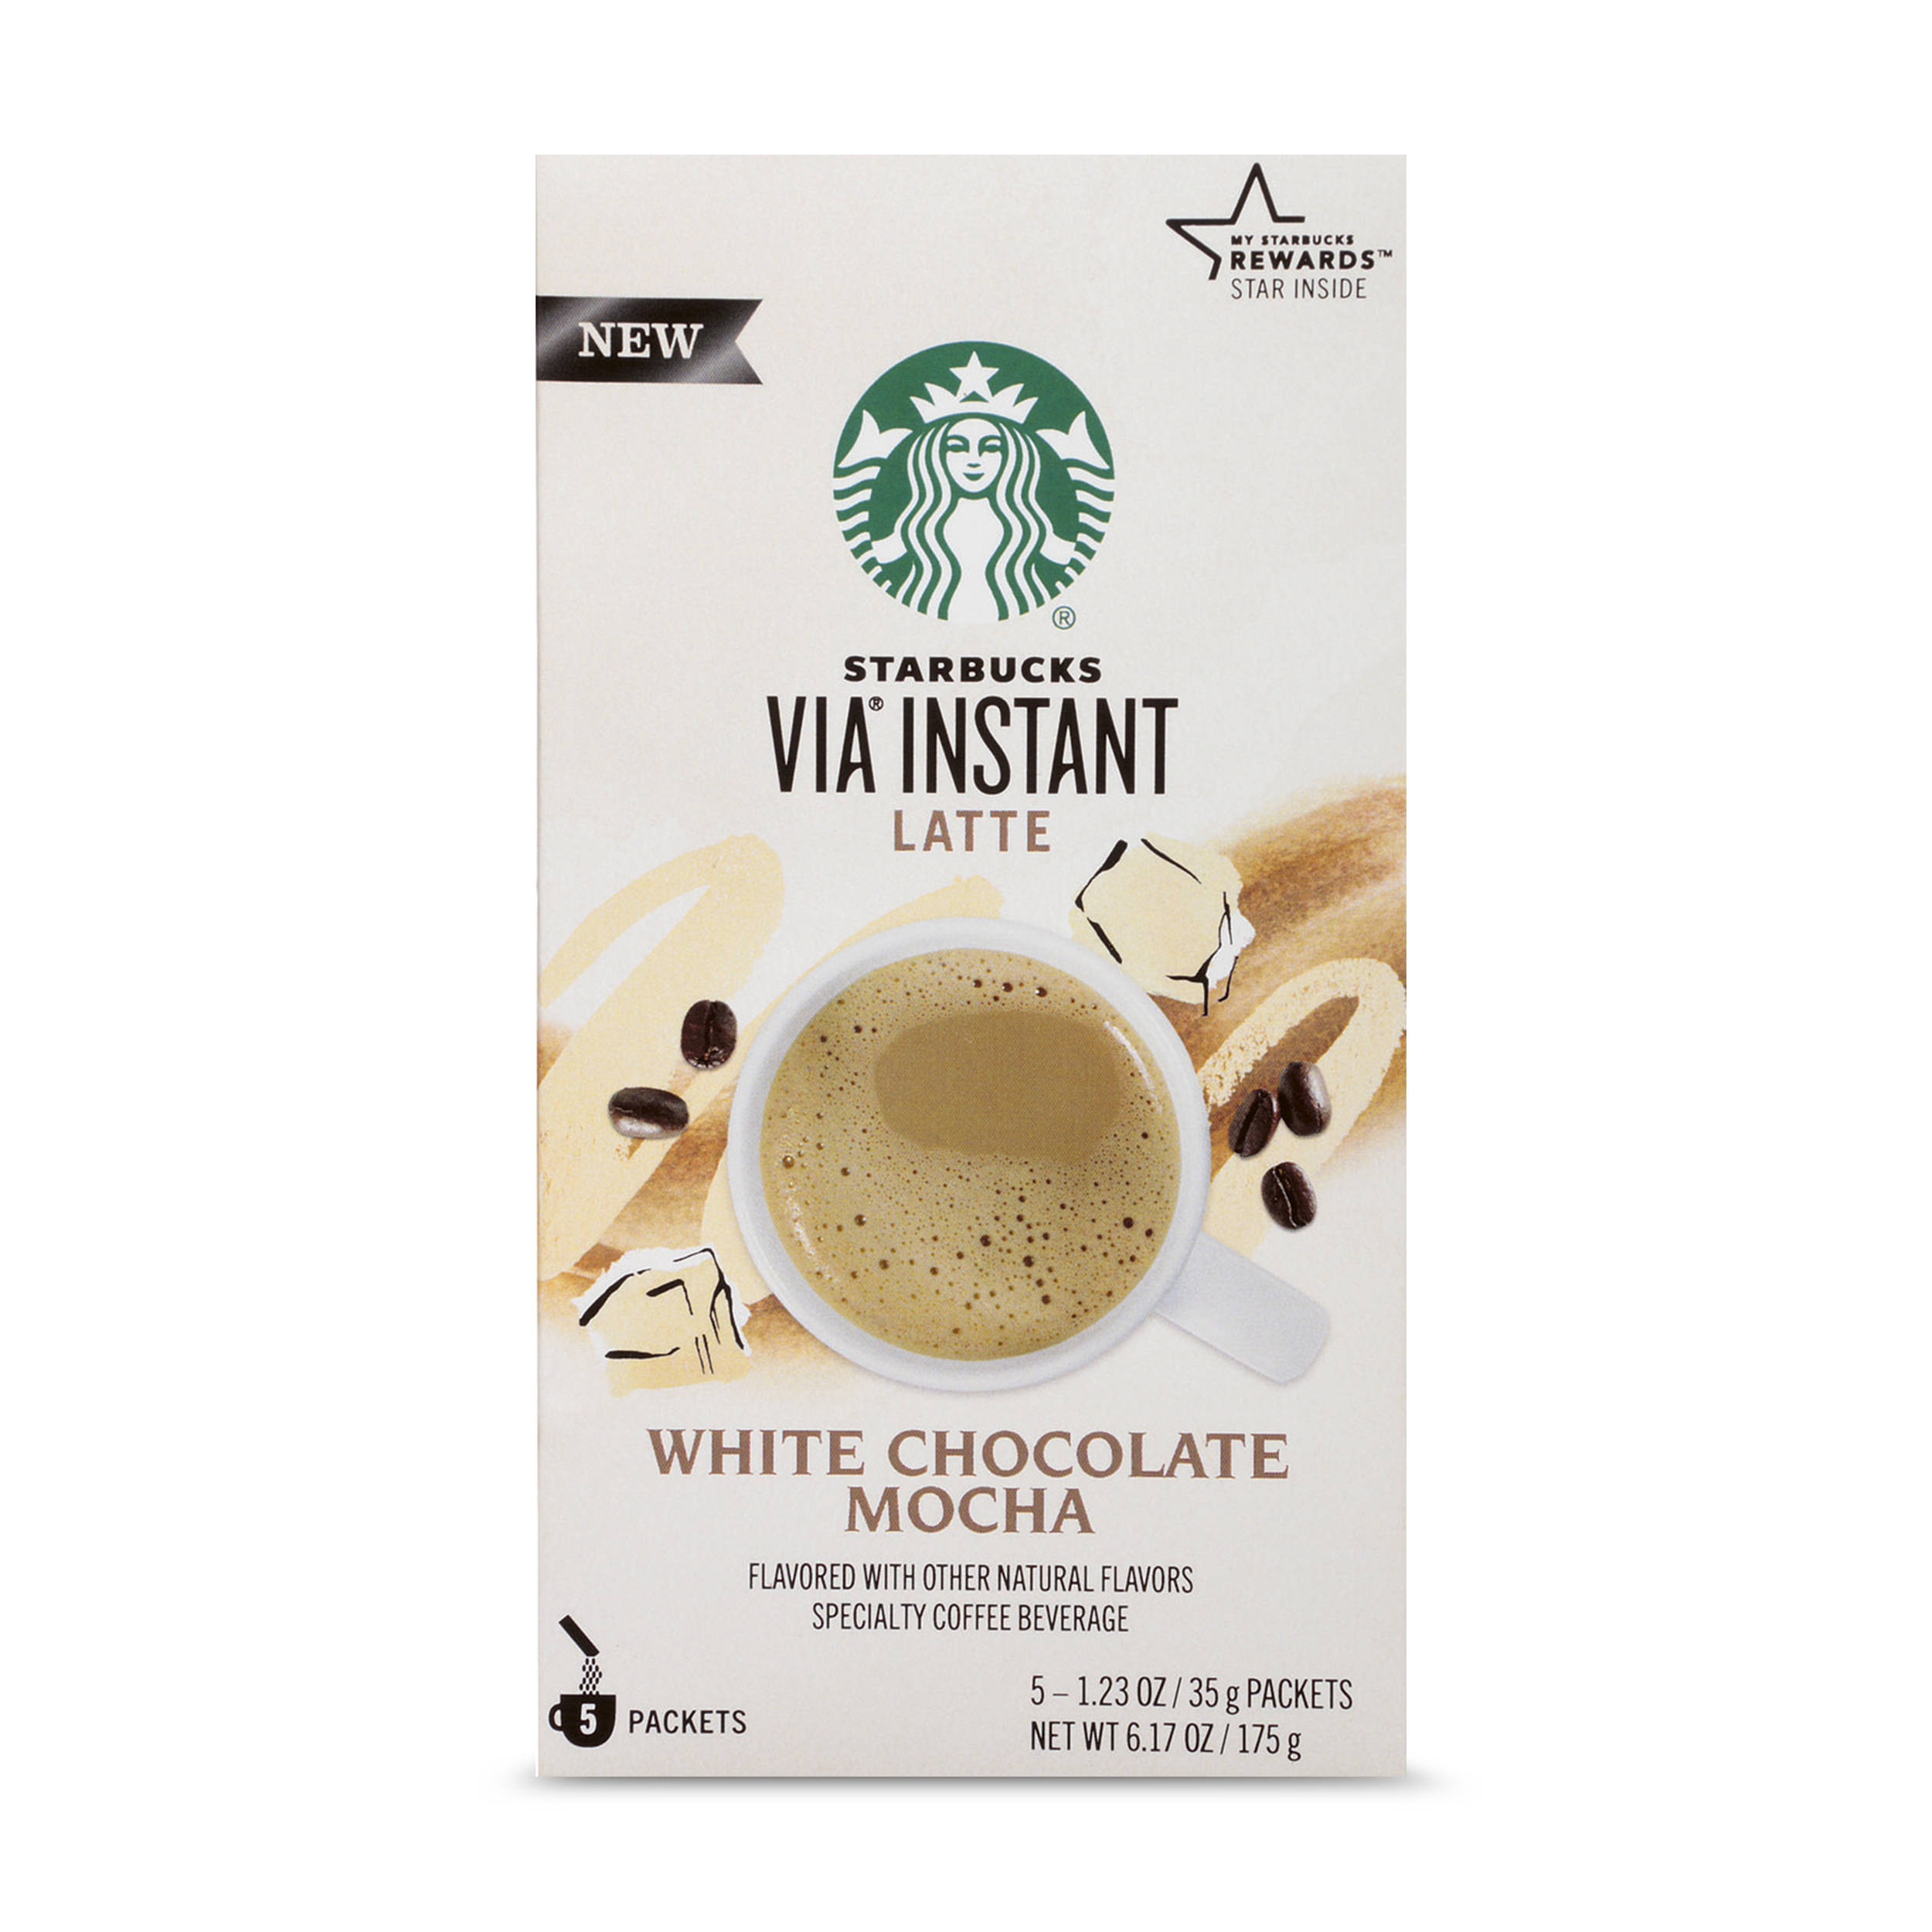 Starbucks VIA Instant White Chocolate Mocha Latte (1 box of 5 ...